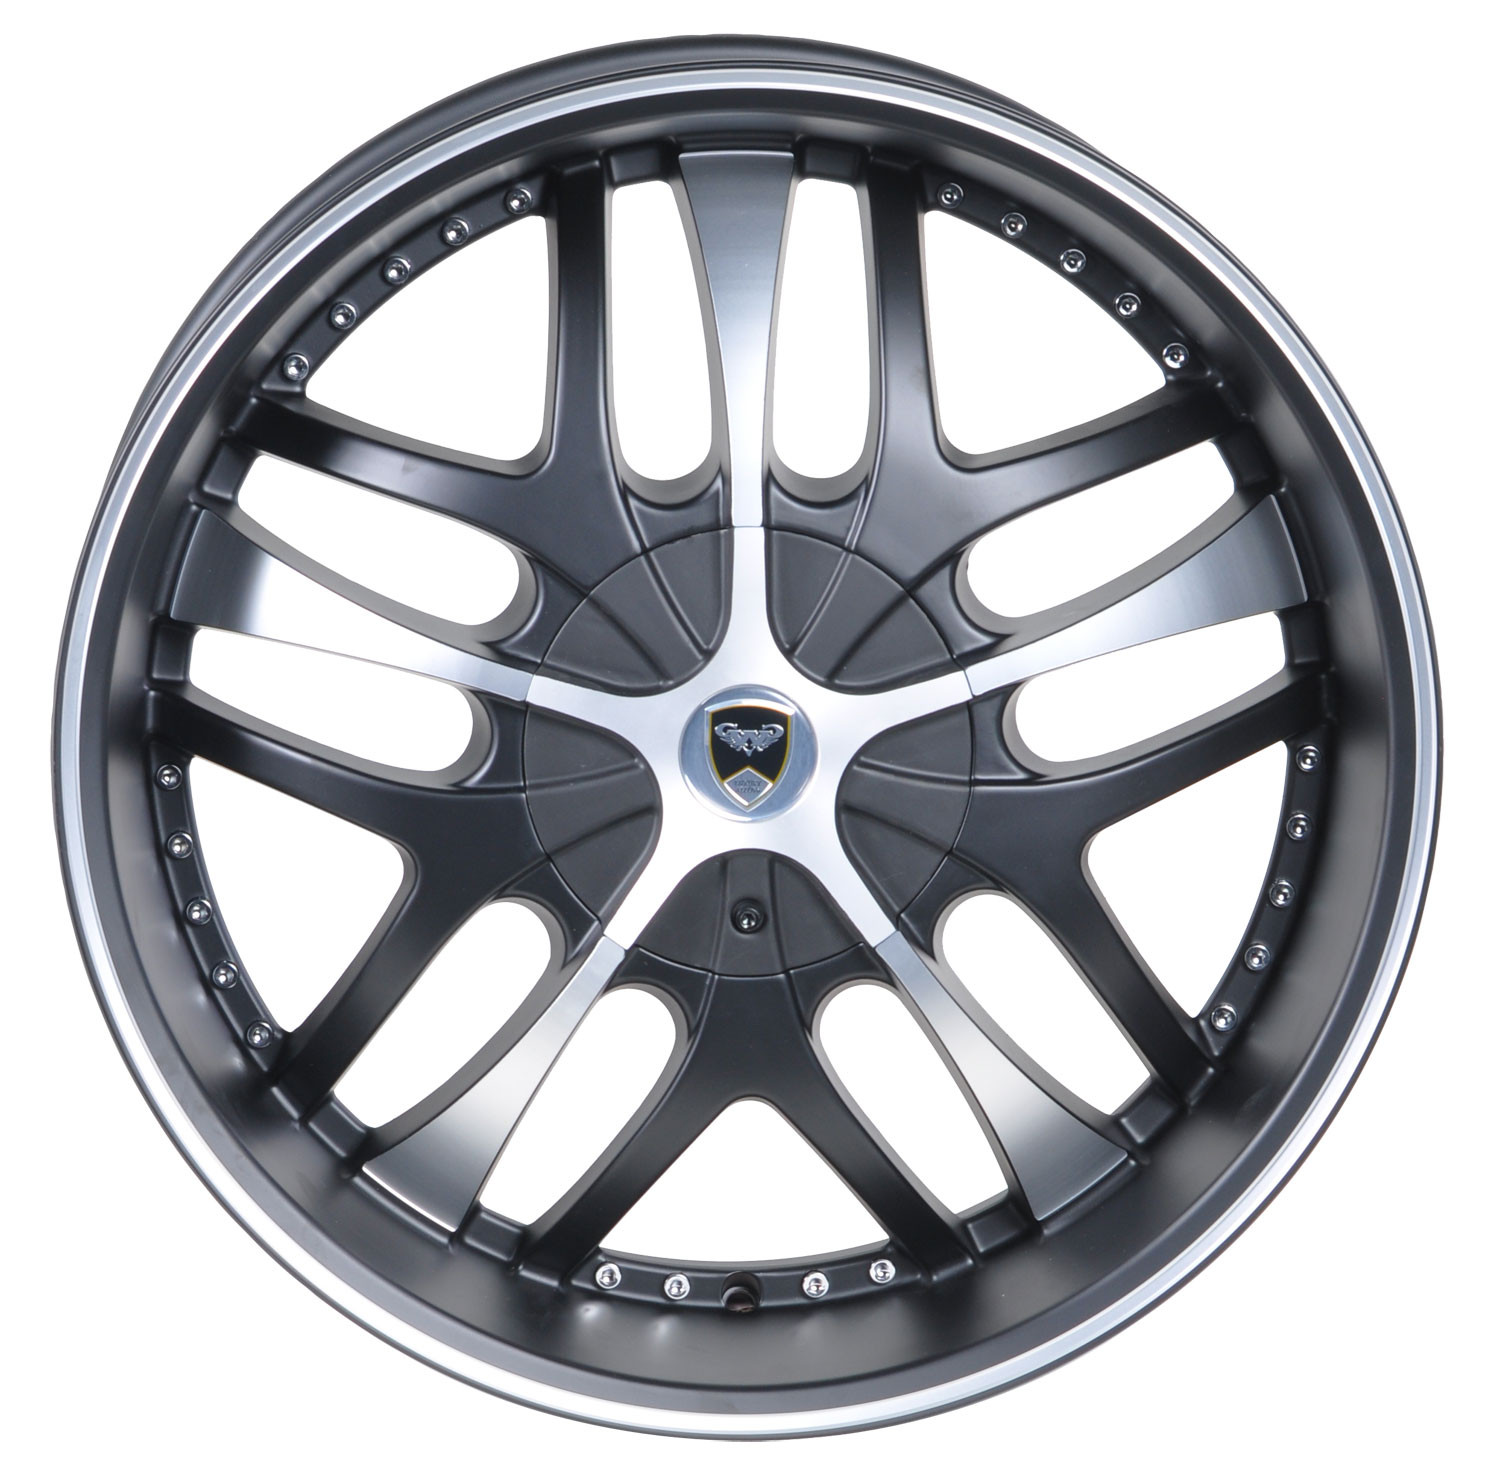 This wheel is fabulous, made for almost any make and model vehicle. The 5 dual spoke wheel adds a lot of style to the look of your vehicle. When you ride the street you will turn heads with this wheel.